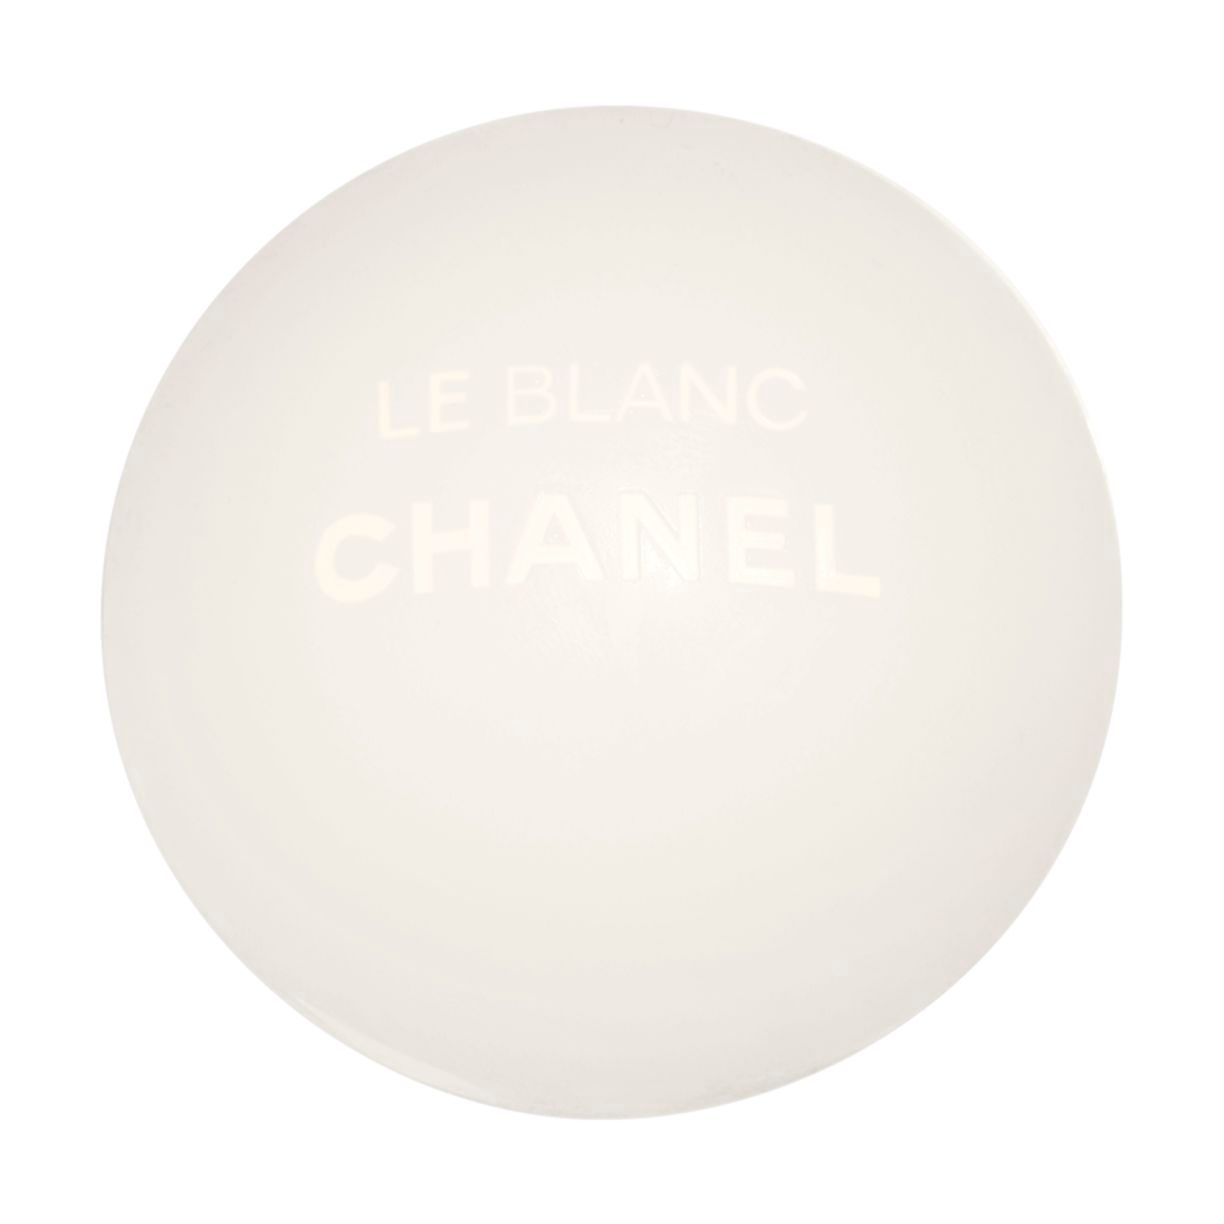 LE BLANC BRIGHTENING PEARL SOAP MAKEUP REMOVER-CLEANSER 100g